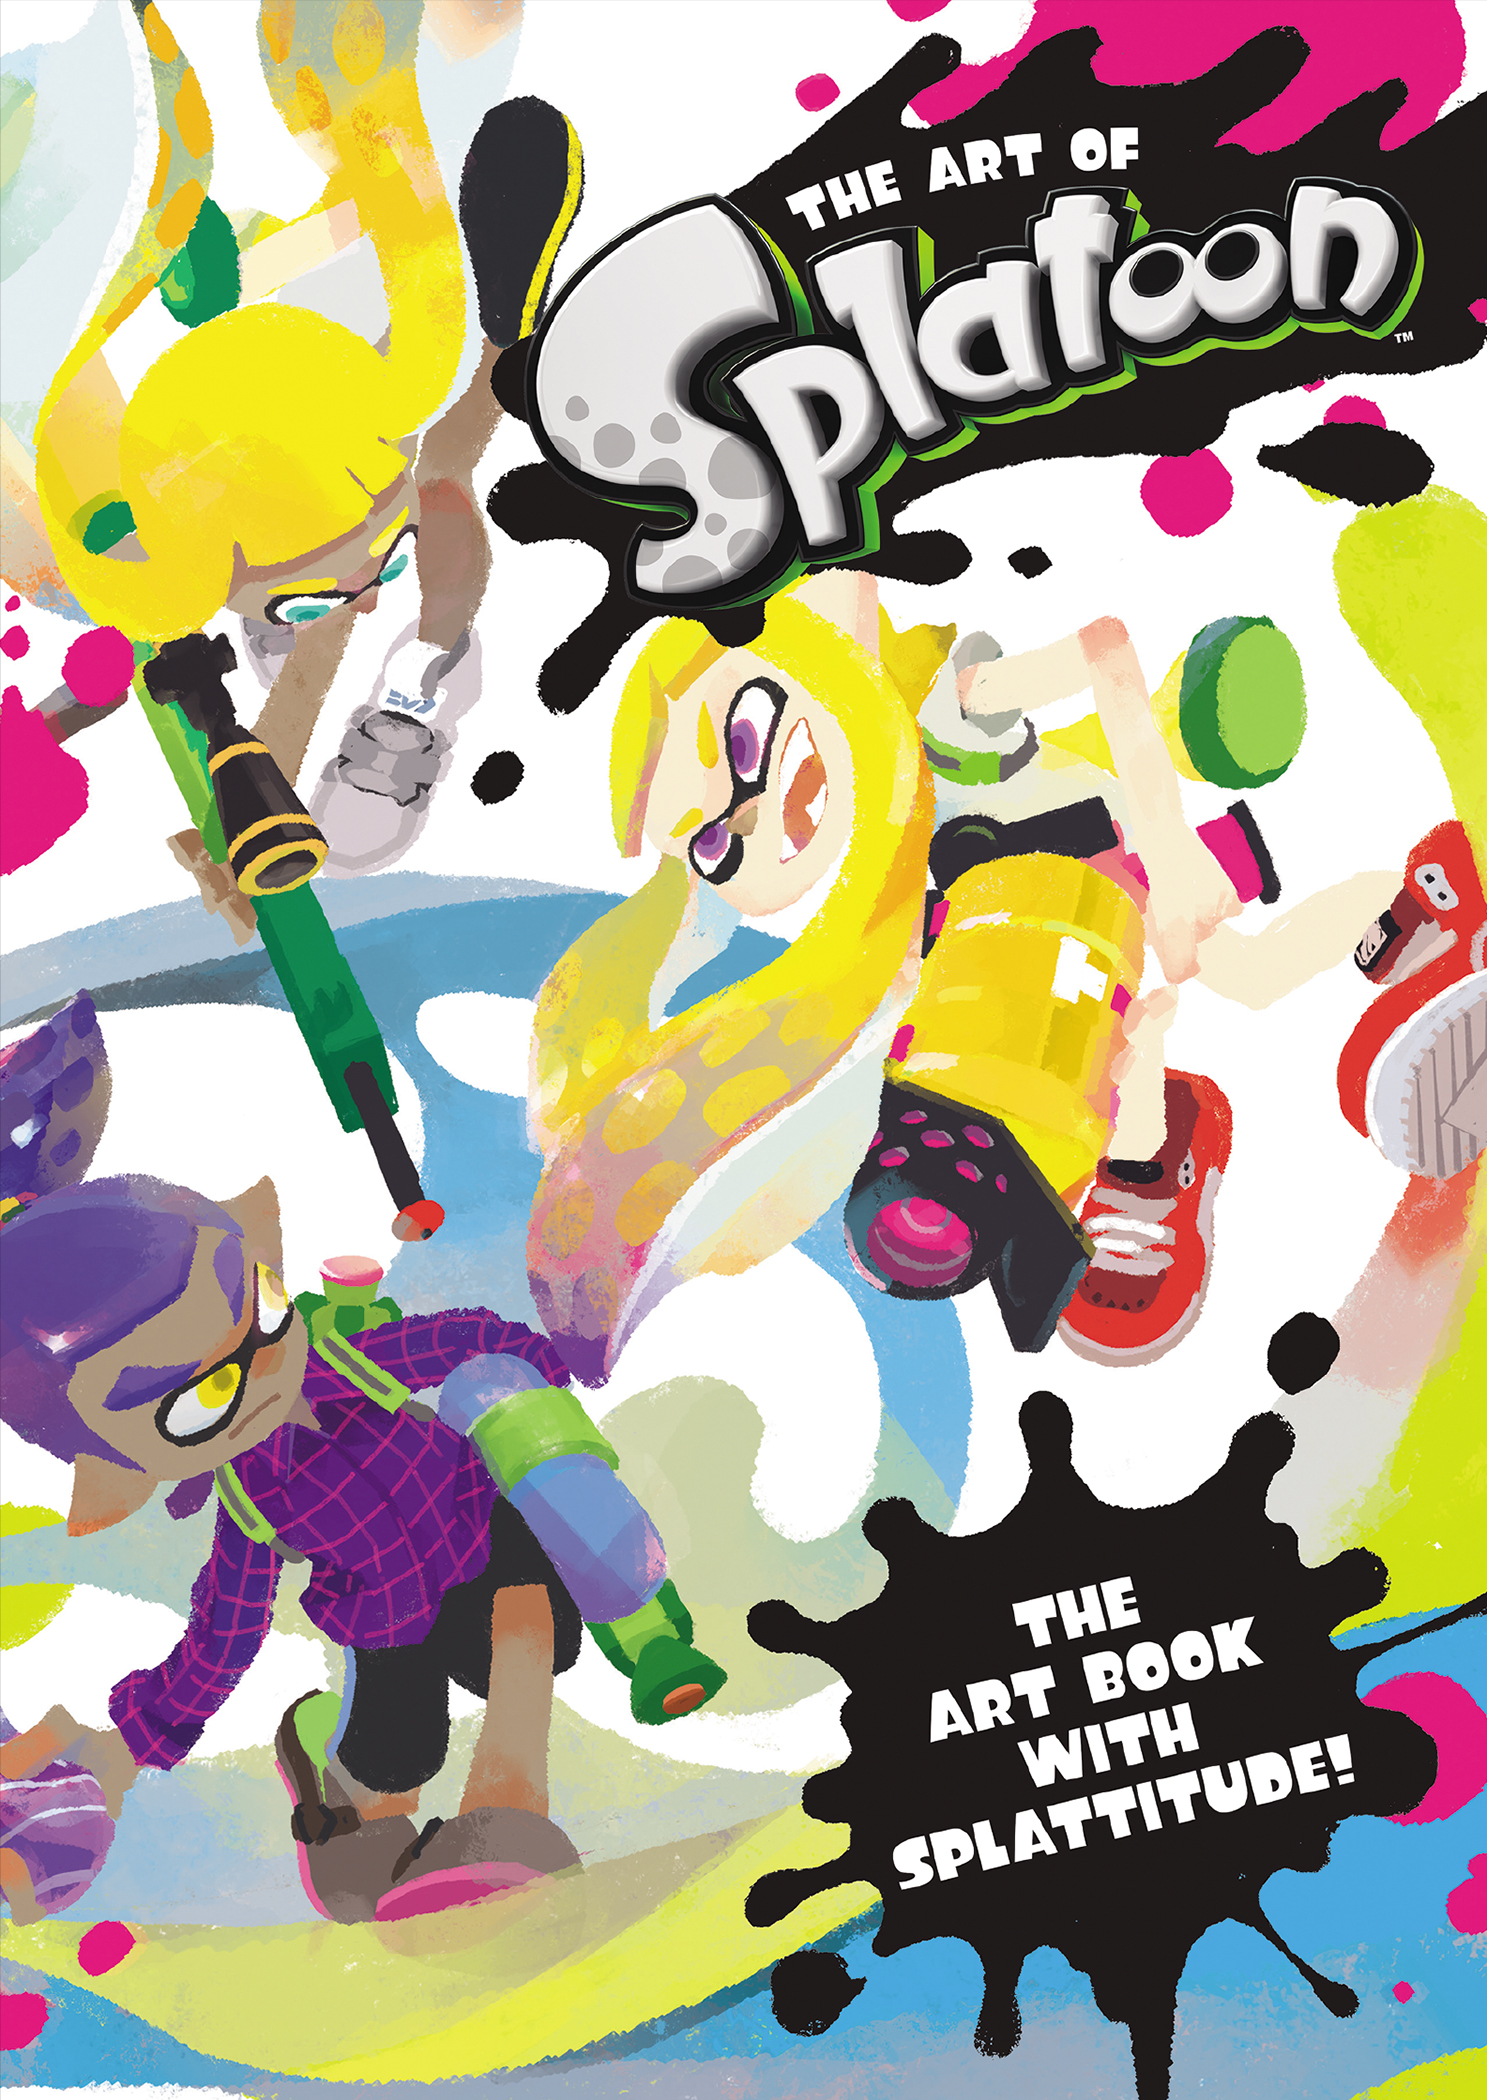 ART OF SPLATOON HC VOL 01 (FEB170015)